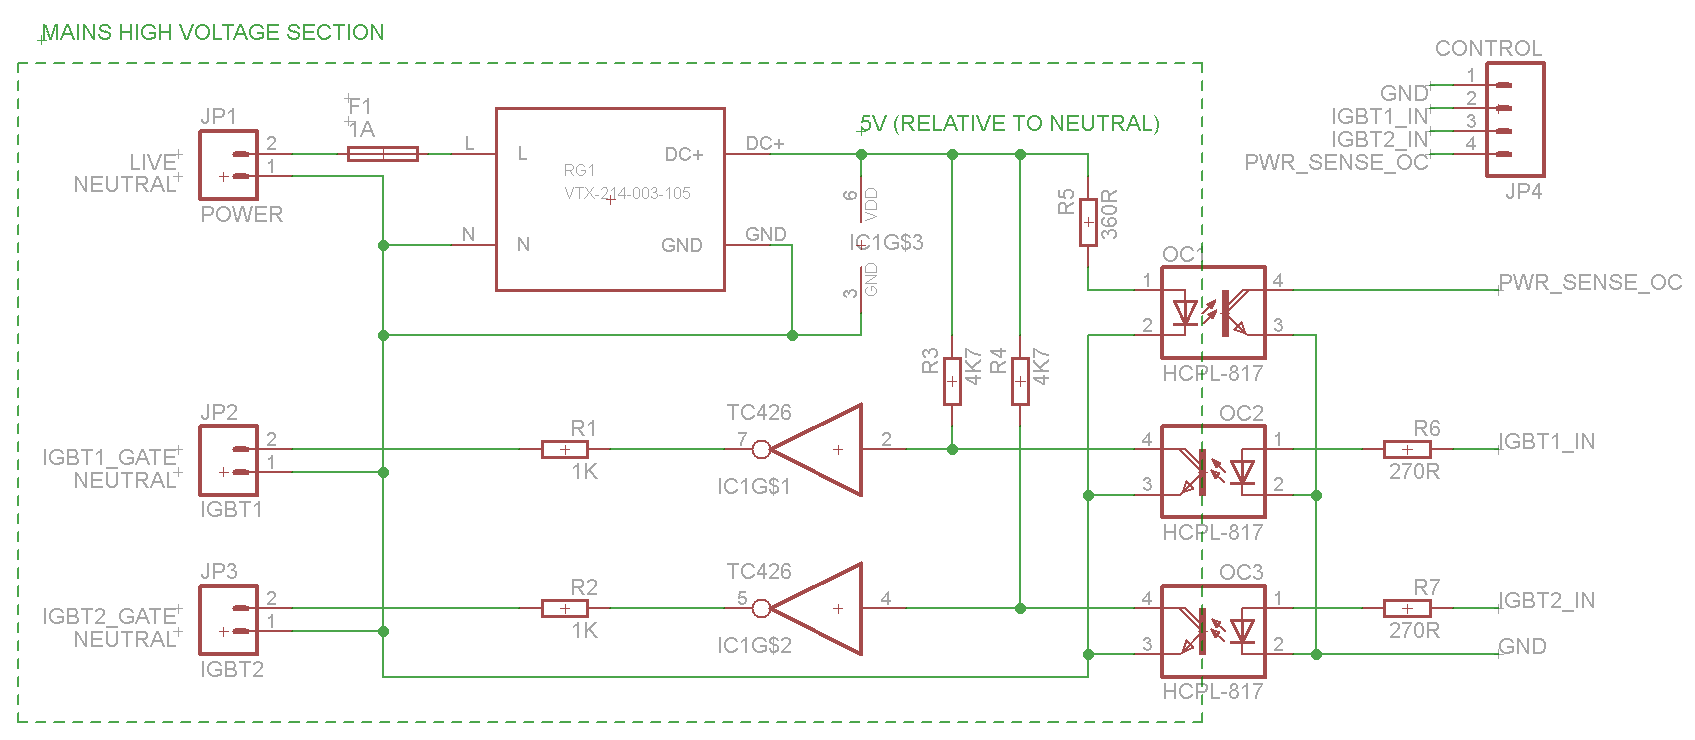 Pcb design for espiresso igbt driver board blog since i had one driver spare in the tc426 i decided to expose this by adding another opto isolator so there are two opto isolated igbt drivers available ccuart Image collections